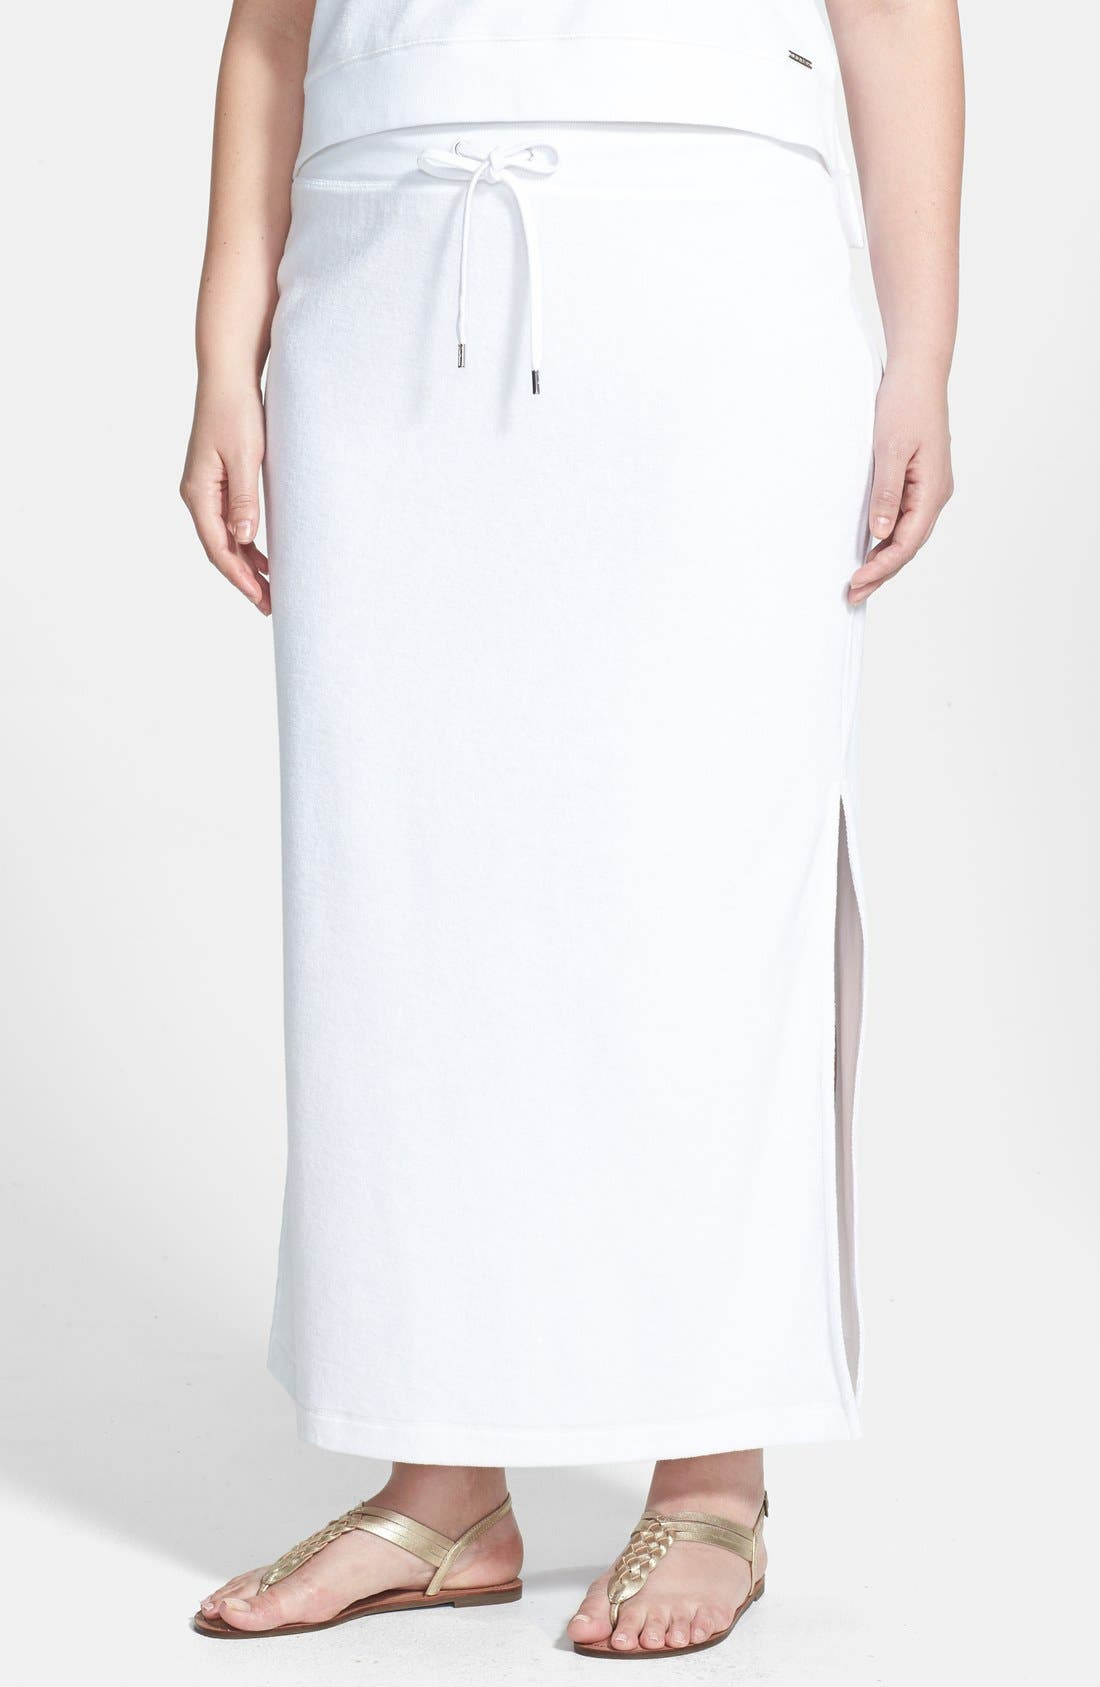 Alternate Image 1 Selected - MICHAEL Michael Kors French Terry Maxi Skirt (Plus Size)